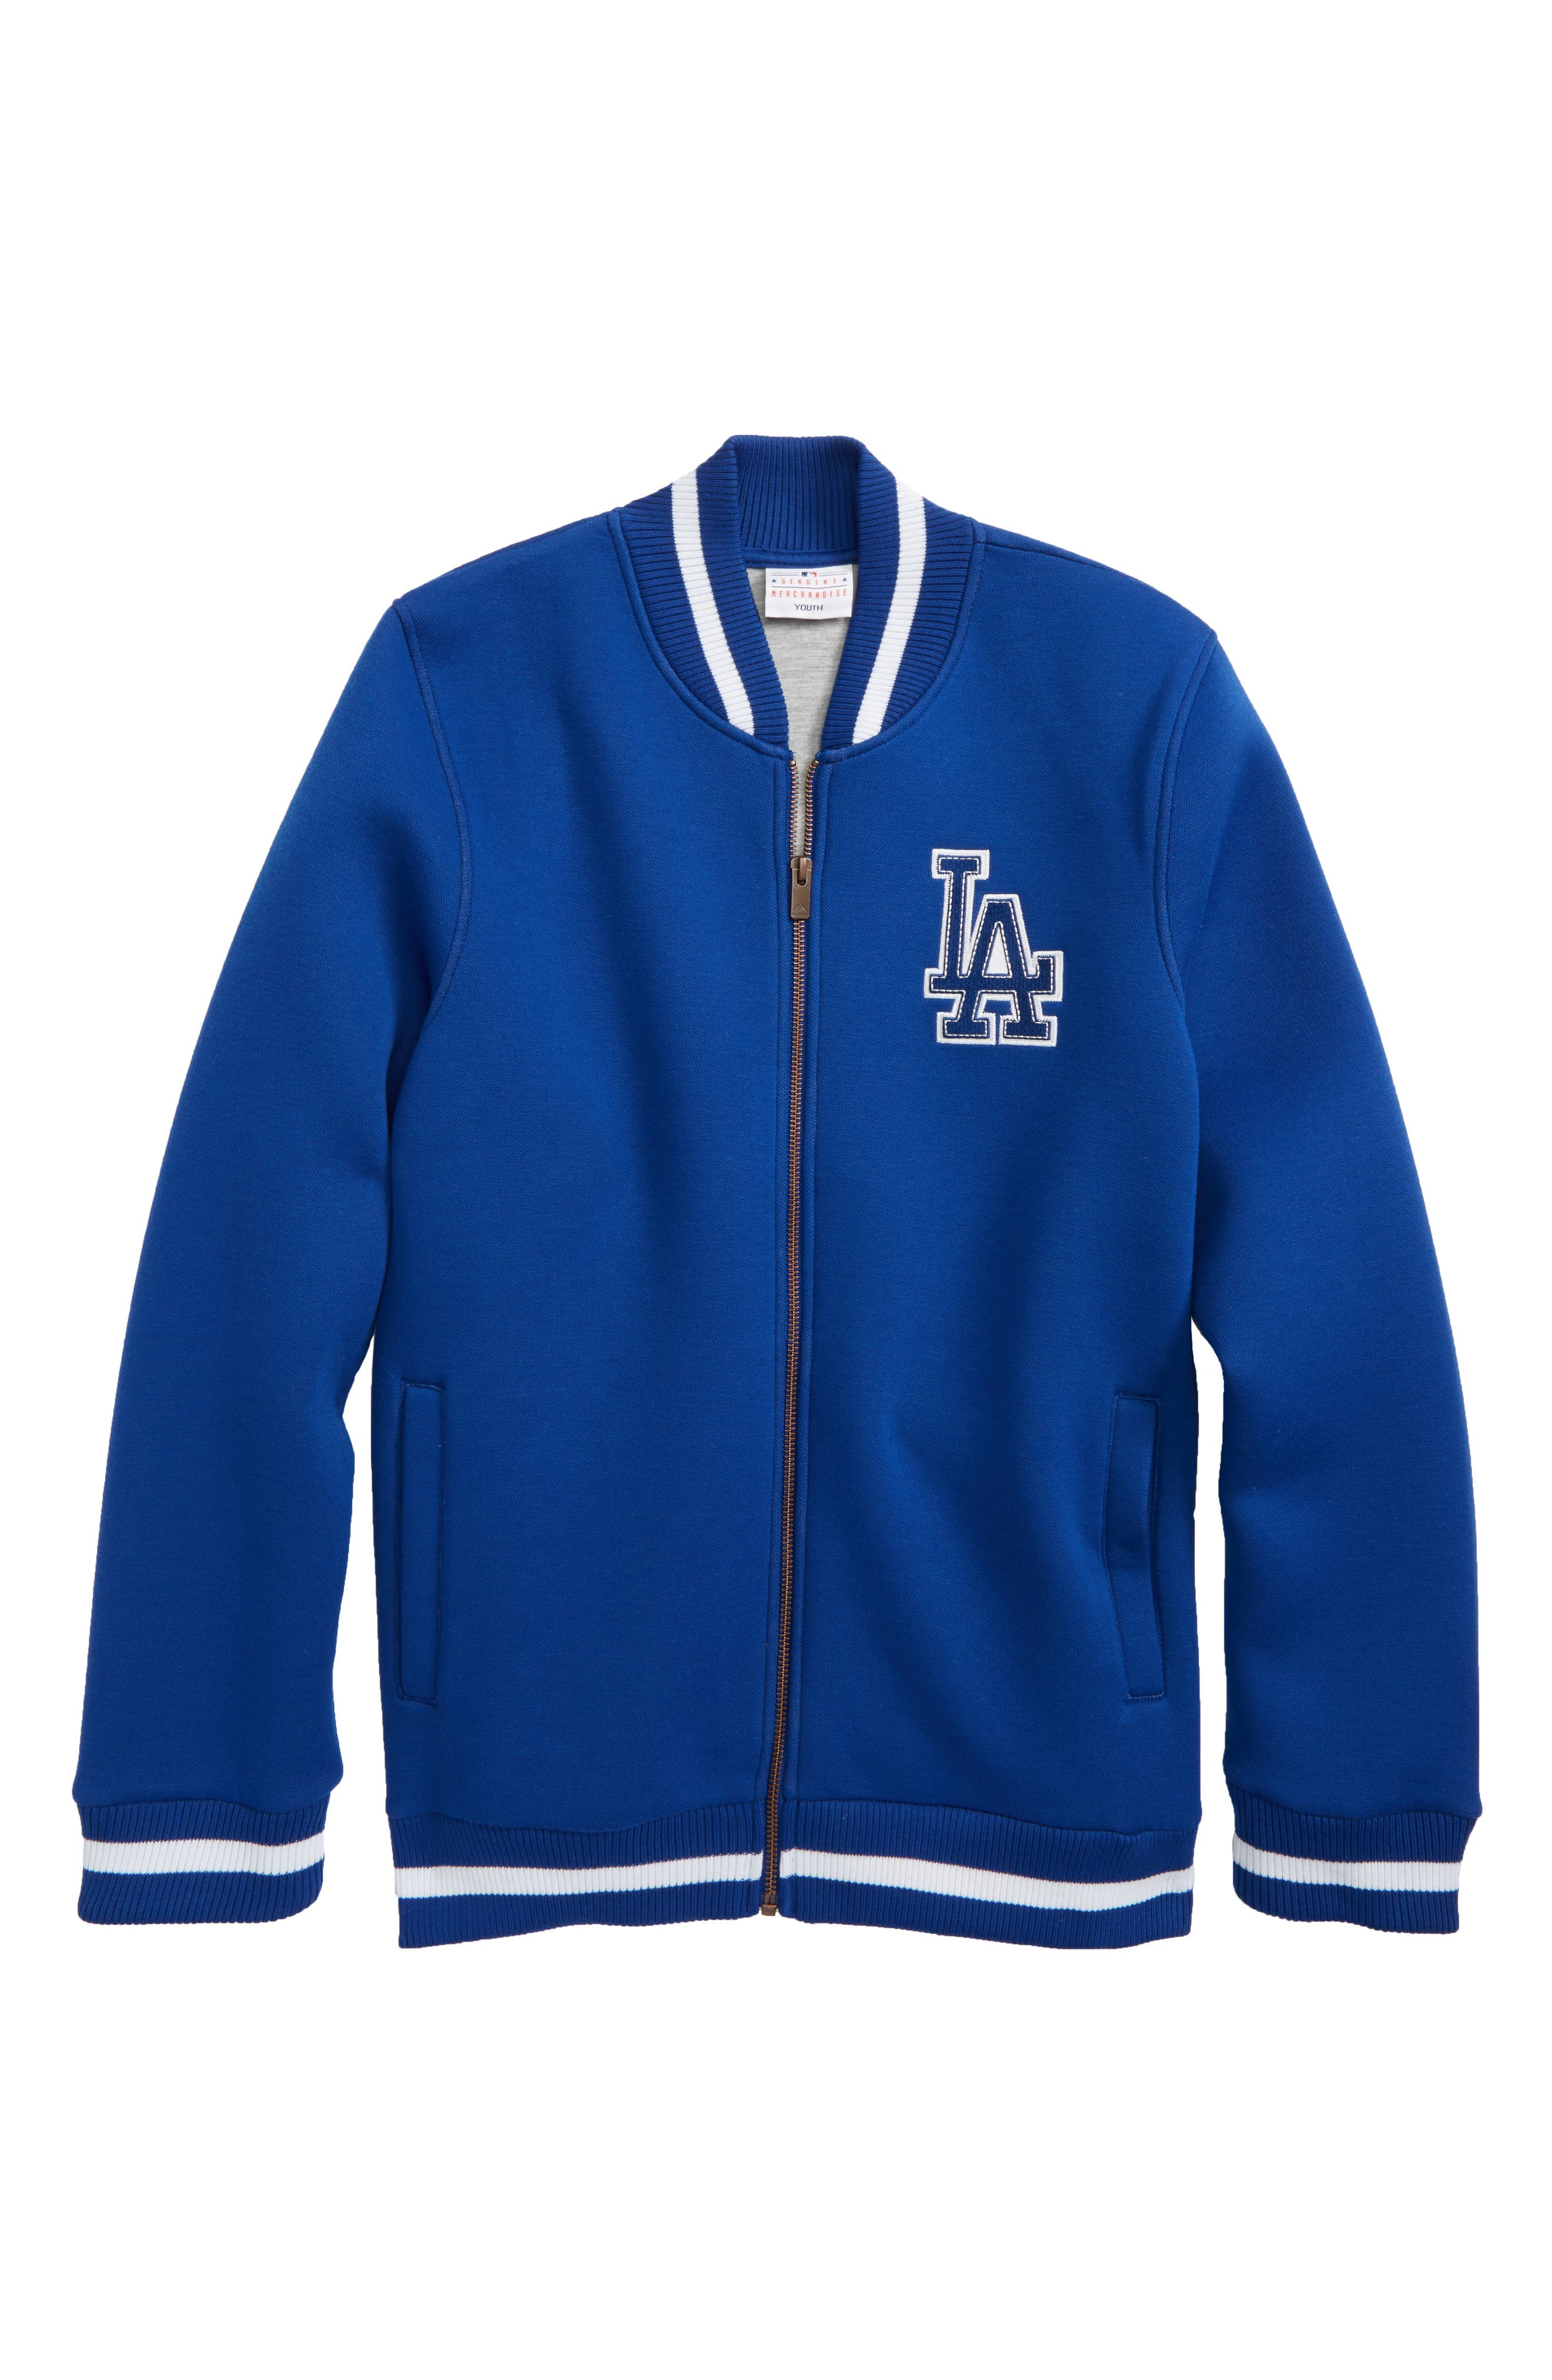 Classical Los Angeles Dodgers Knit Varsity Jacket,                         Main,                         color, Royal